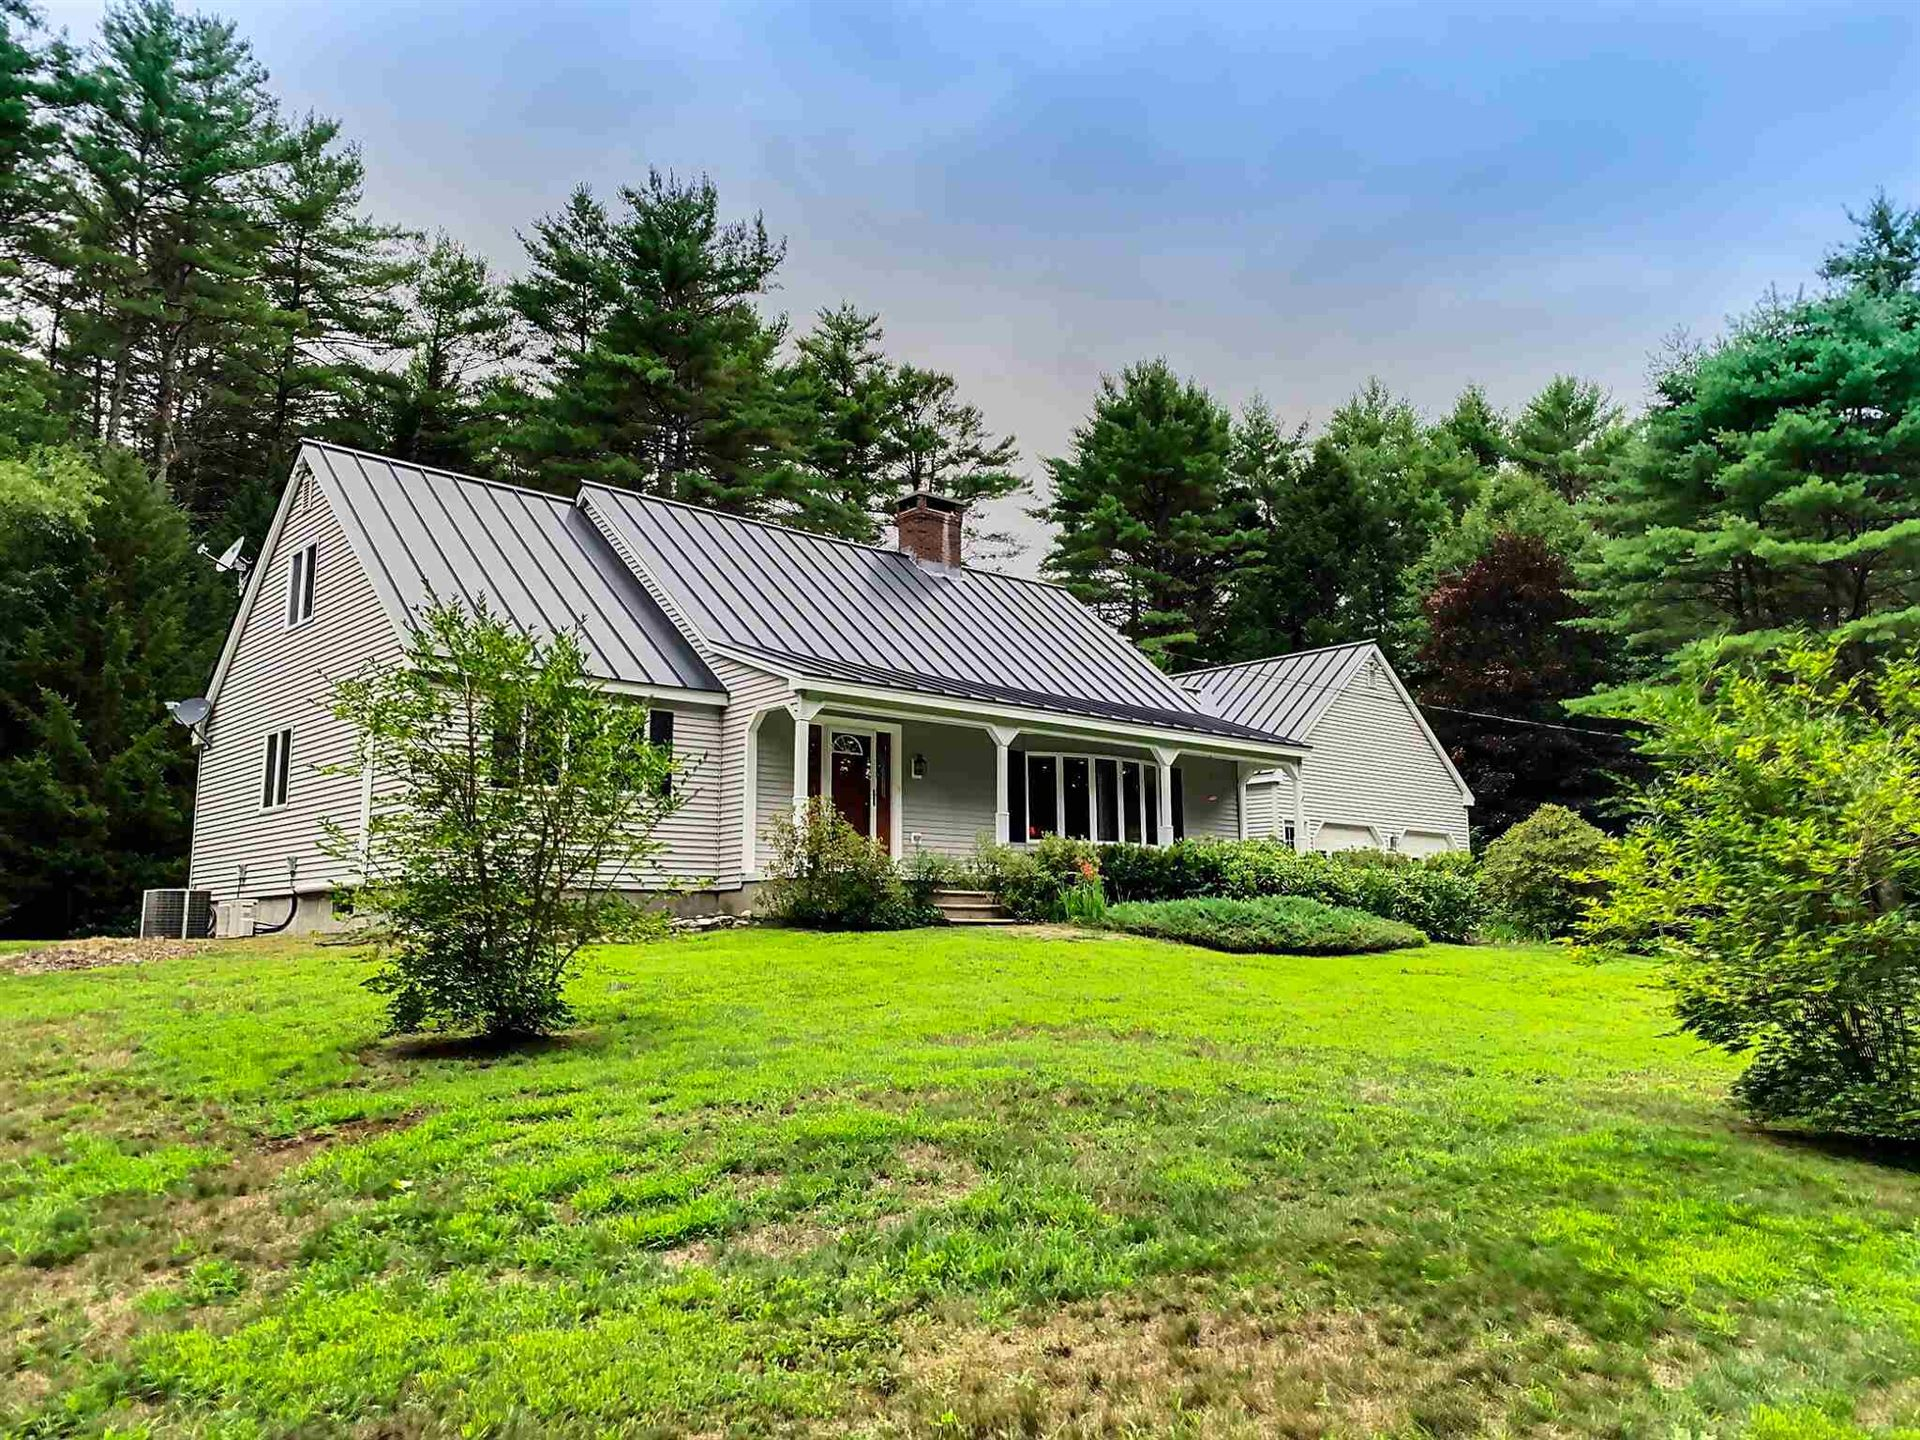 185 Meadowbrook Road, Sutton, NH 03260 - MLS#: 4820625